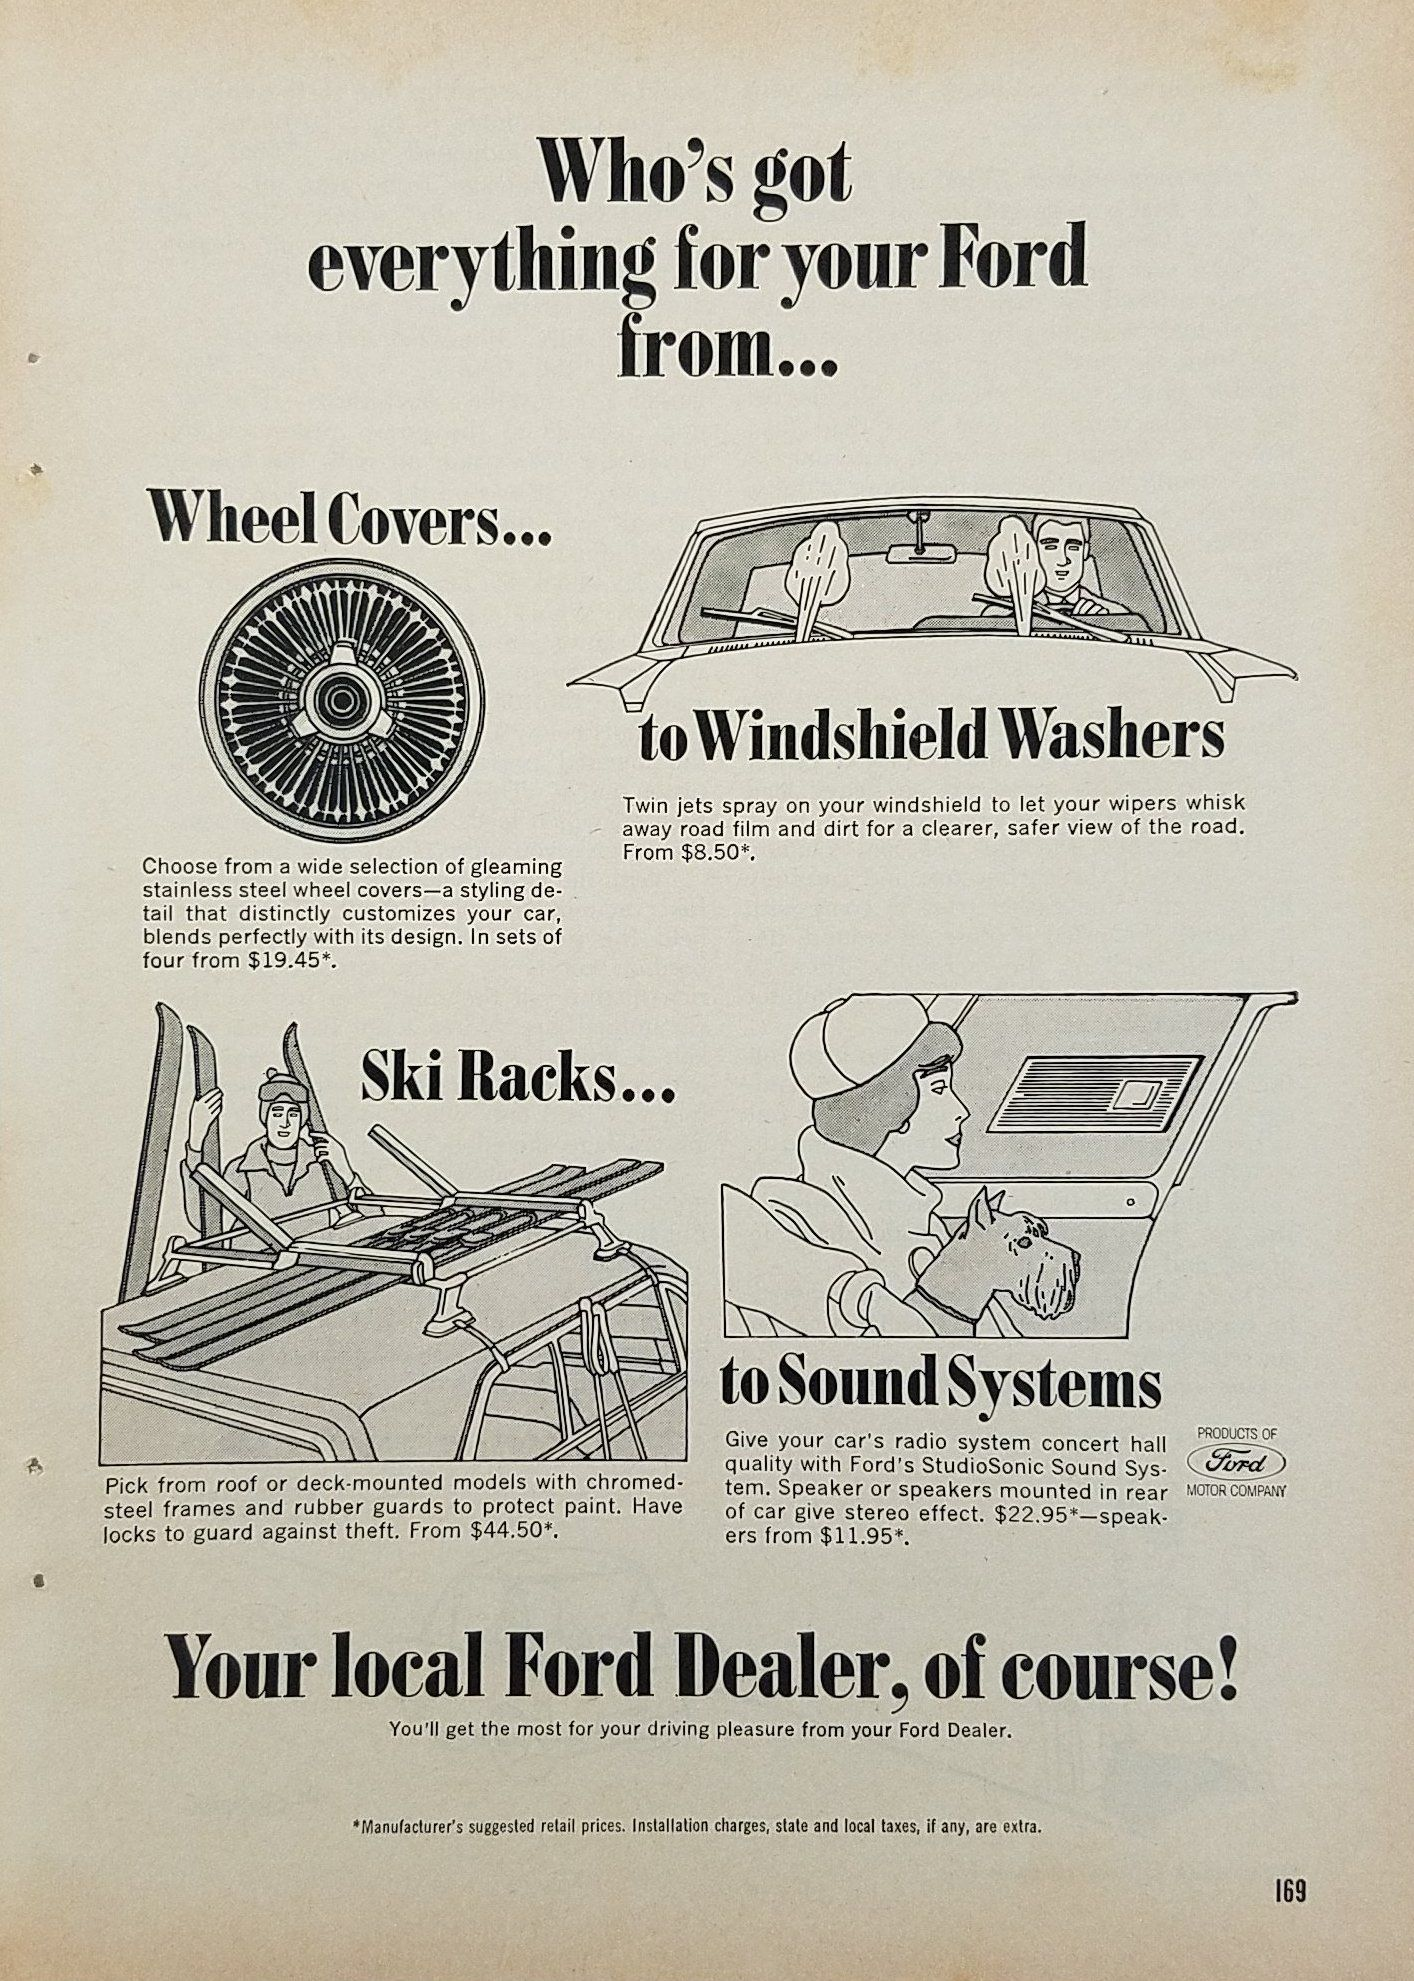 1965 F250 Windshield Washer Diagram Schematic Diagrams Wipers Ford Wiringwindshield Dealers Have Everything For Your Vintage Ad Turn Signal